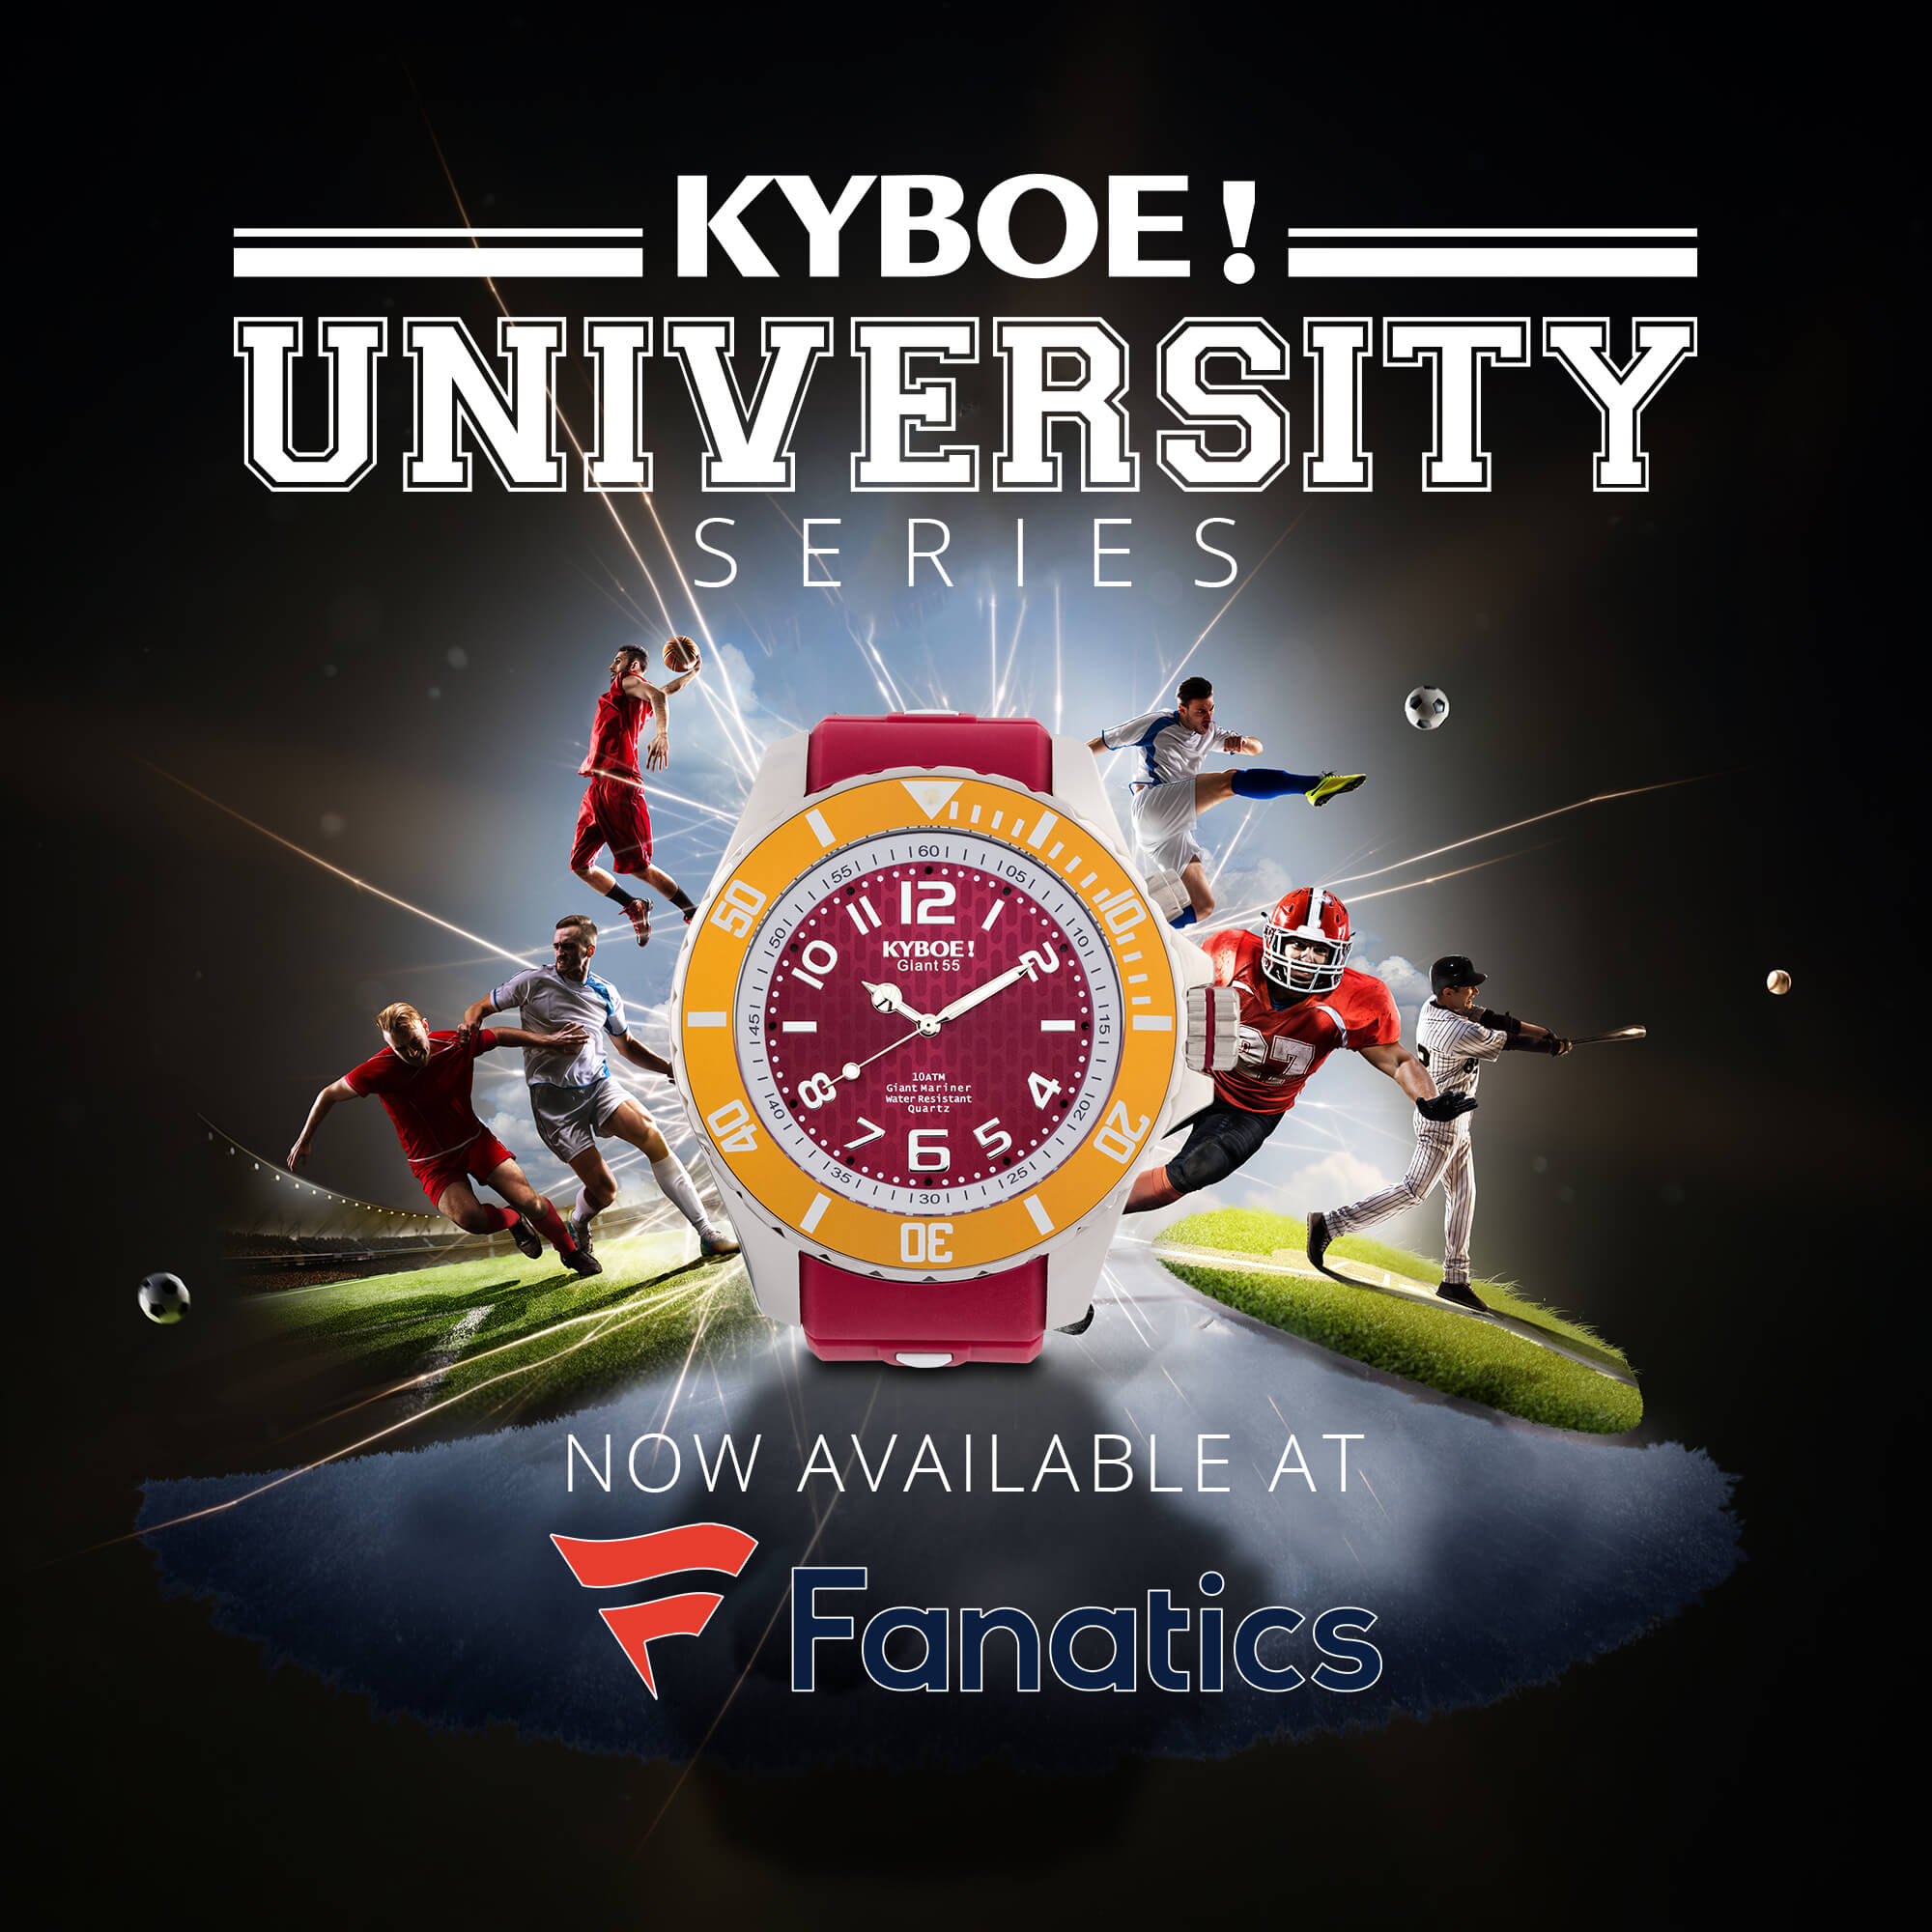 Just in Time for Football Season, Fanatics adds the Kyboe! University Collection of watches to their lineup of products